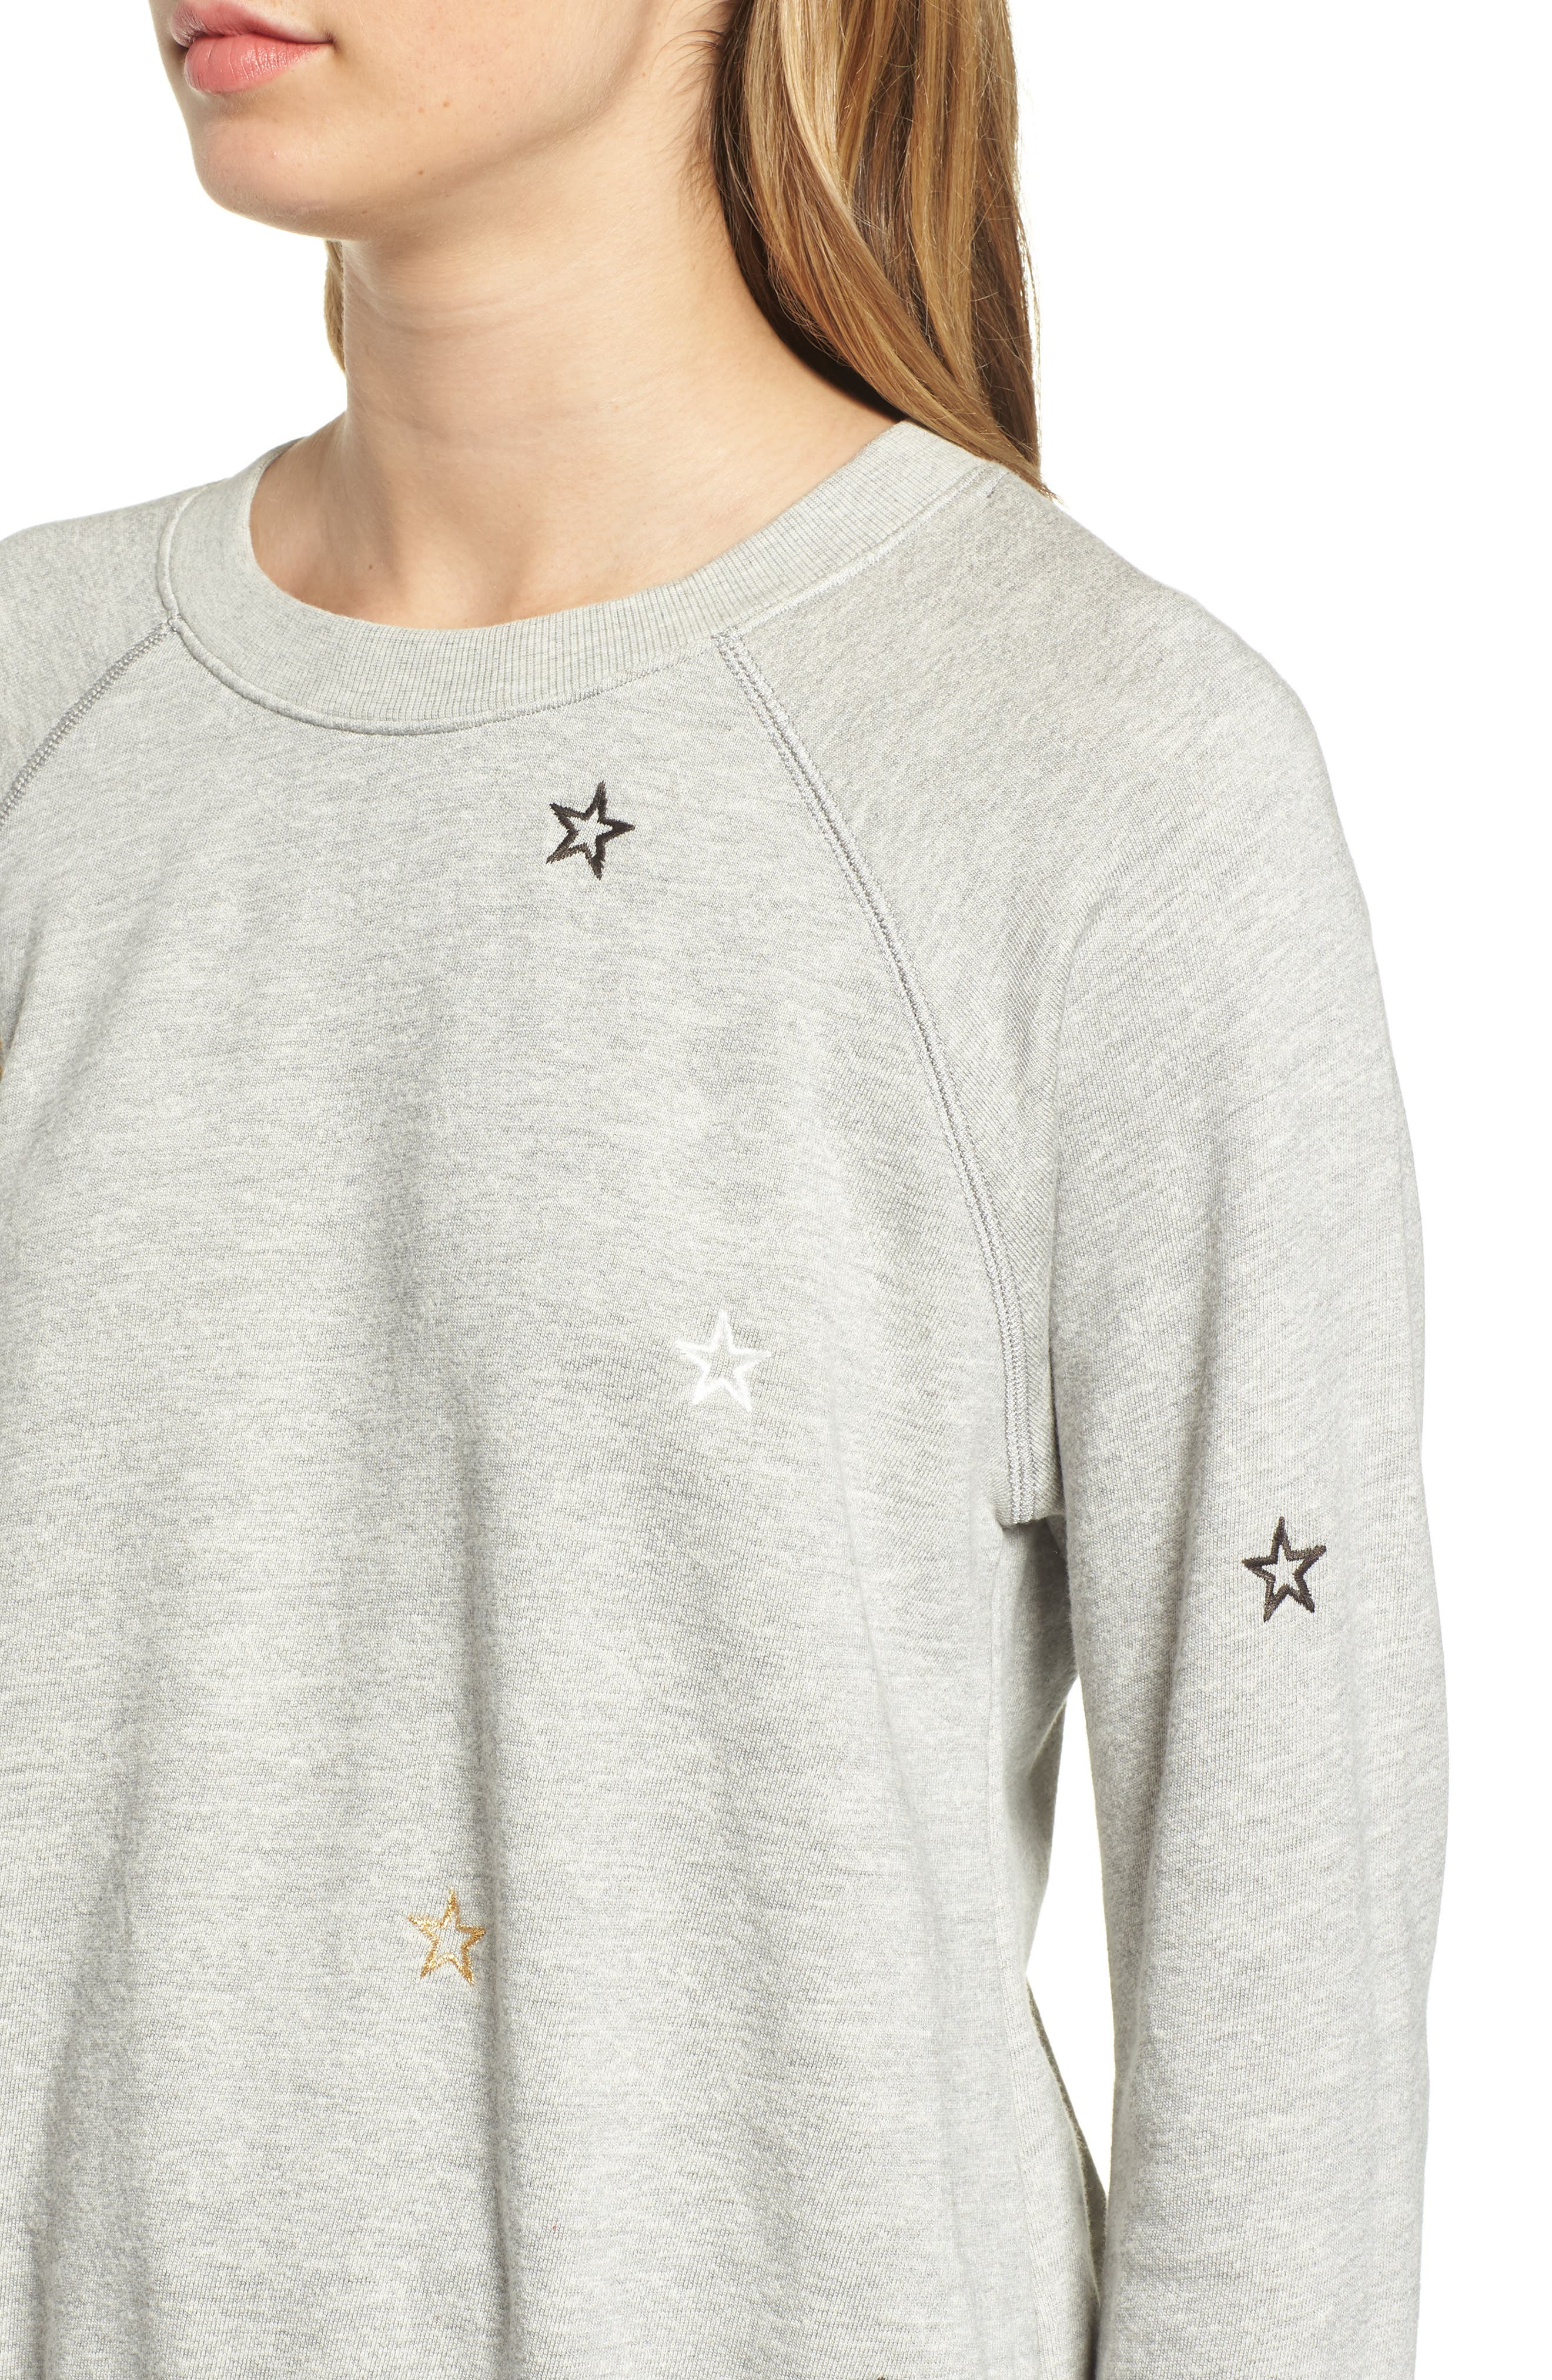 Star Embroidered Sweatshirt,                             Alternate thumbnail 4, color,                             HEATHER GREY